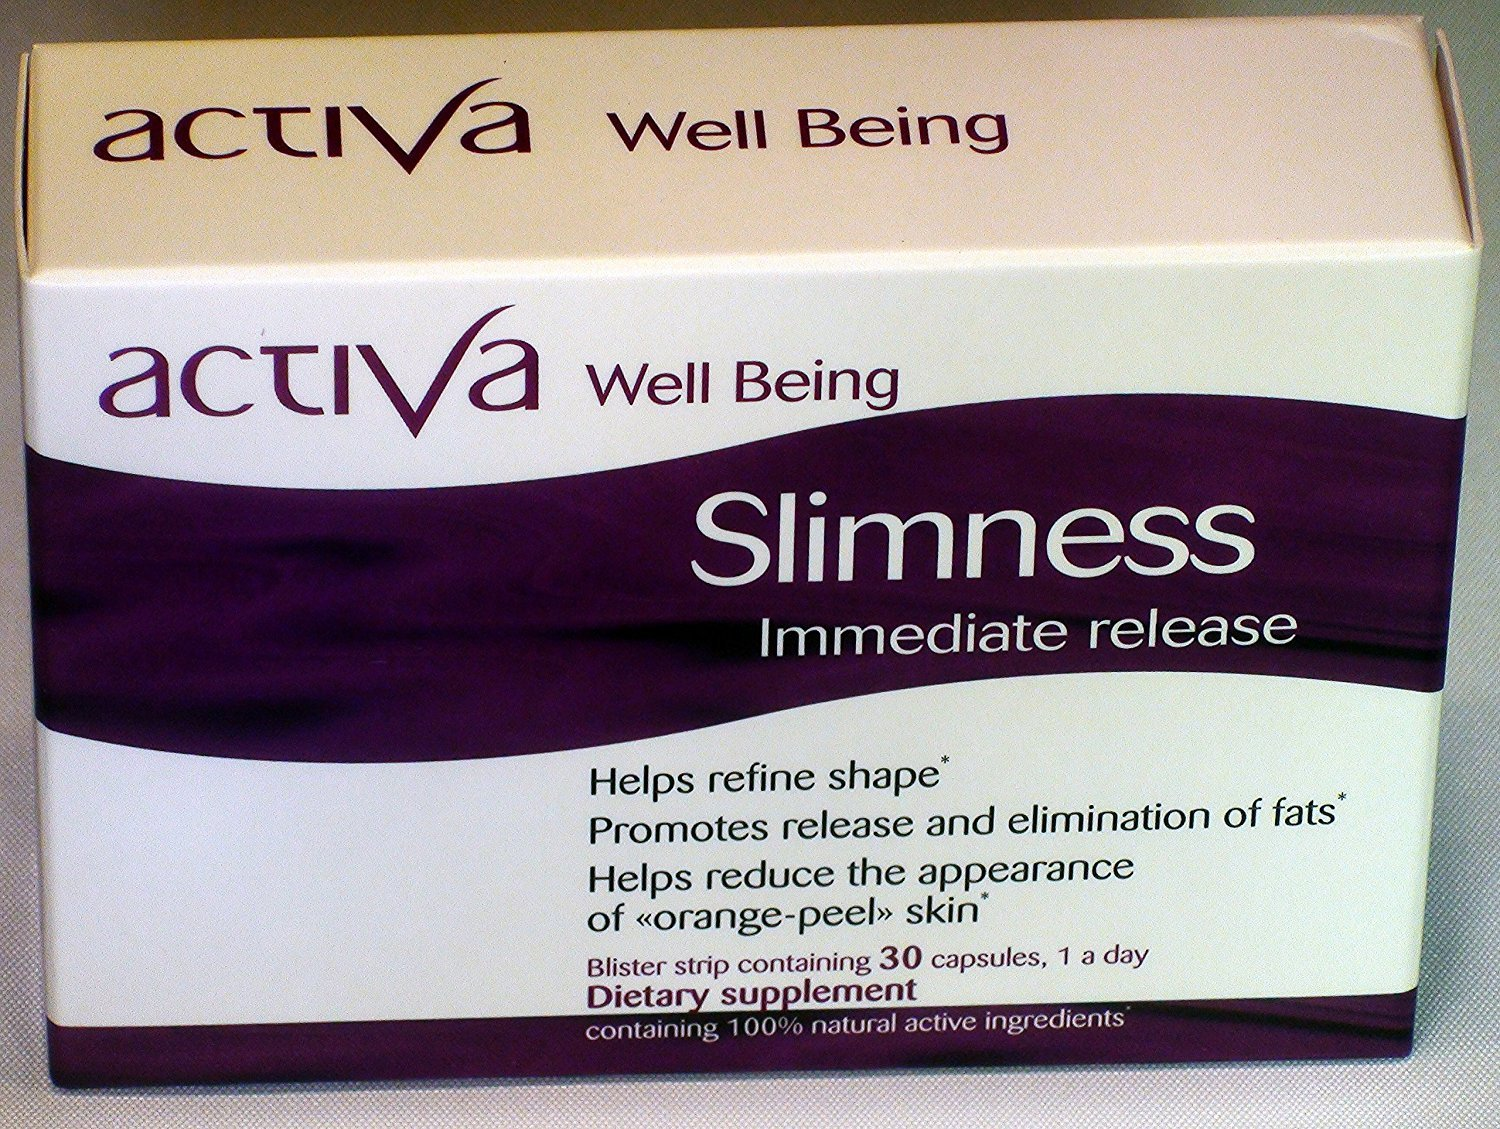 Activa Well Being Slimness (Weight Loss) - Immediate Release